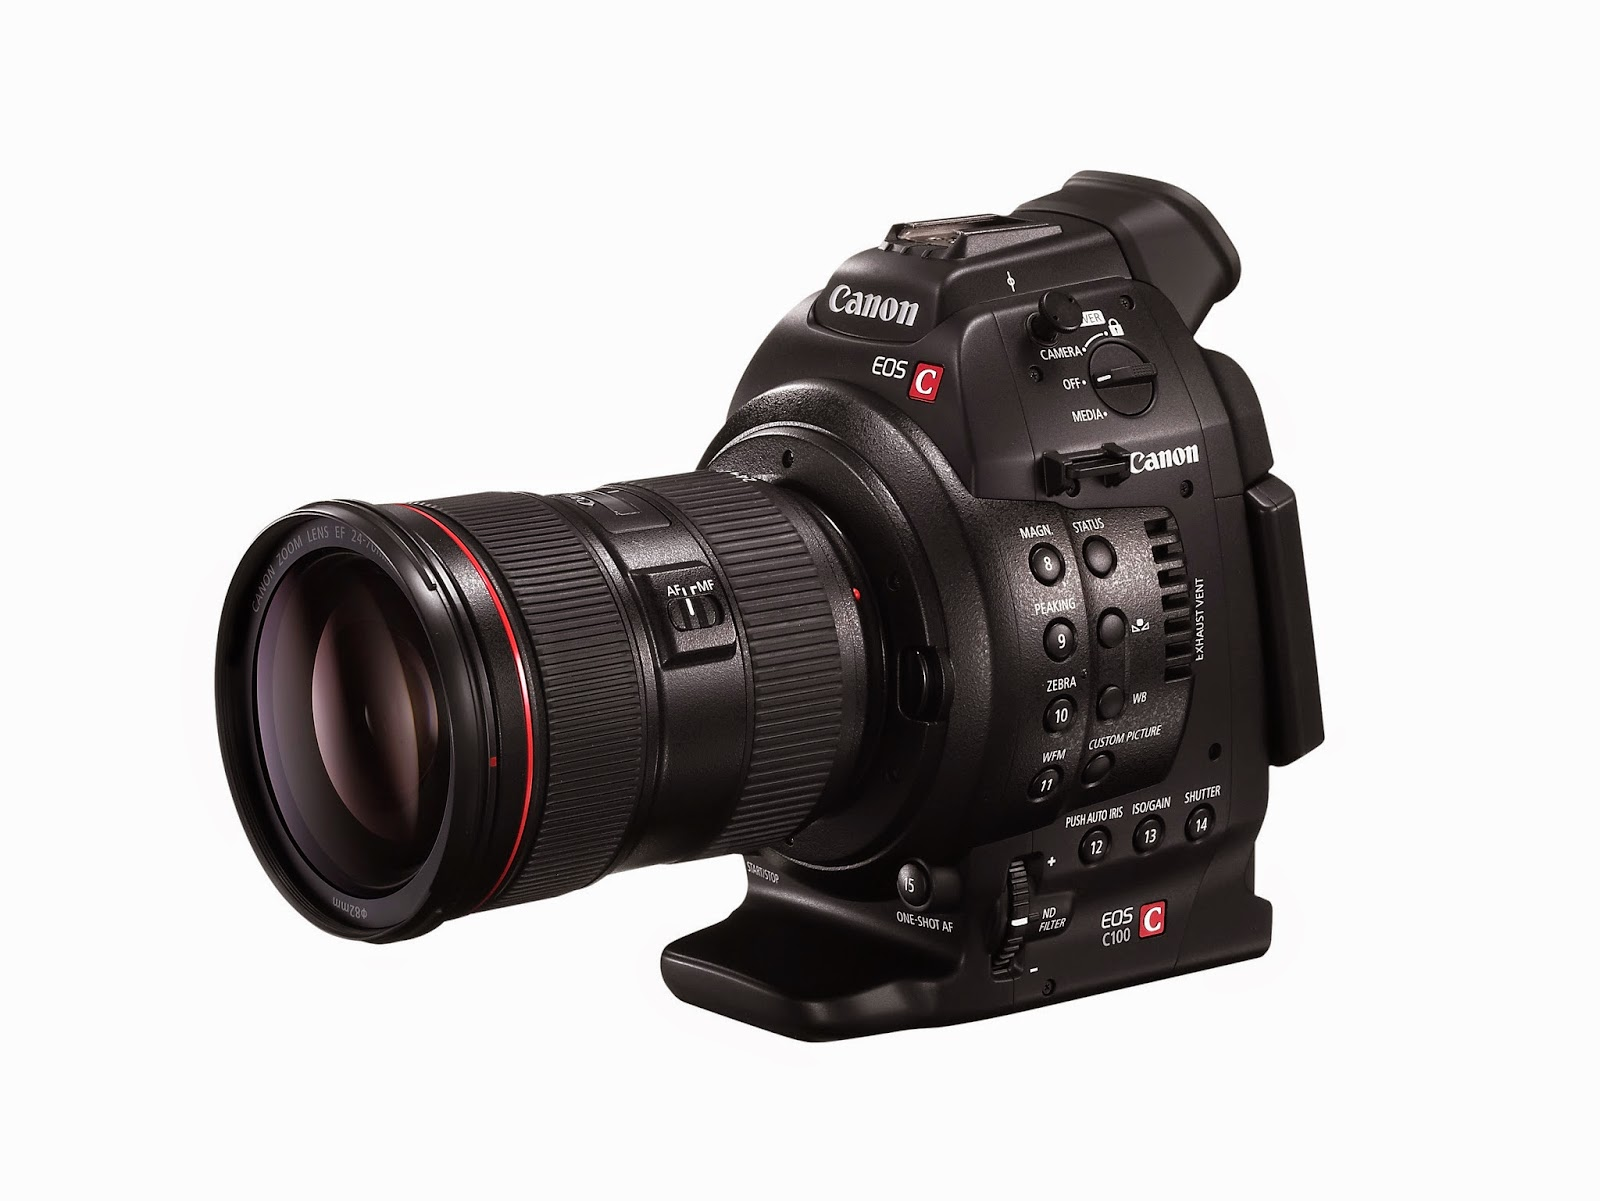 Park Cameras Blog: The Canon EOS C100 - An affordable video